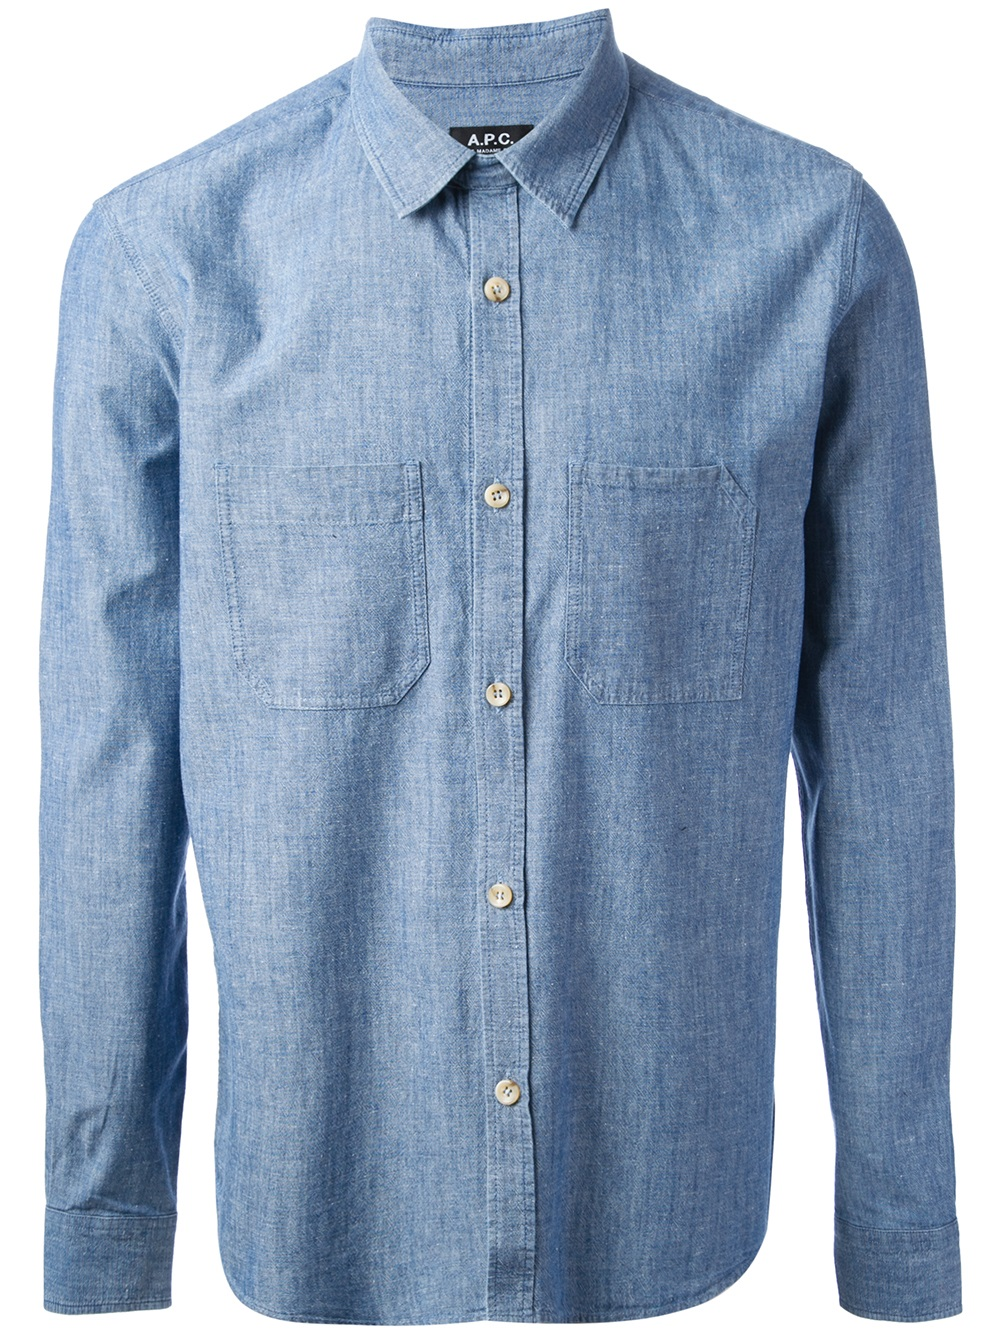 Lyst A P C Chambray Work Shirt In Blue For Men